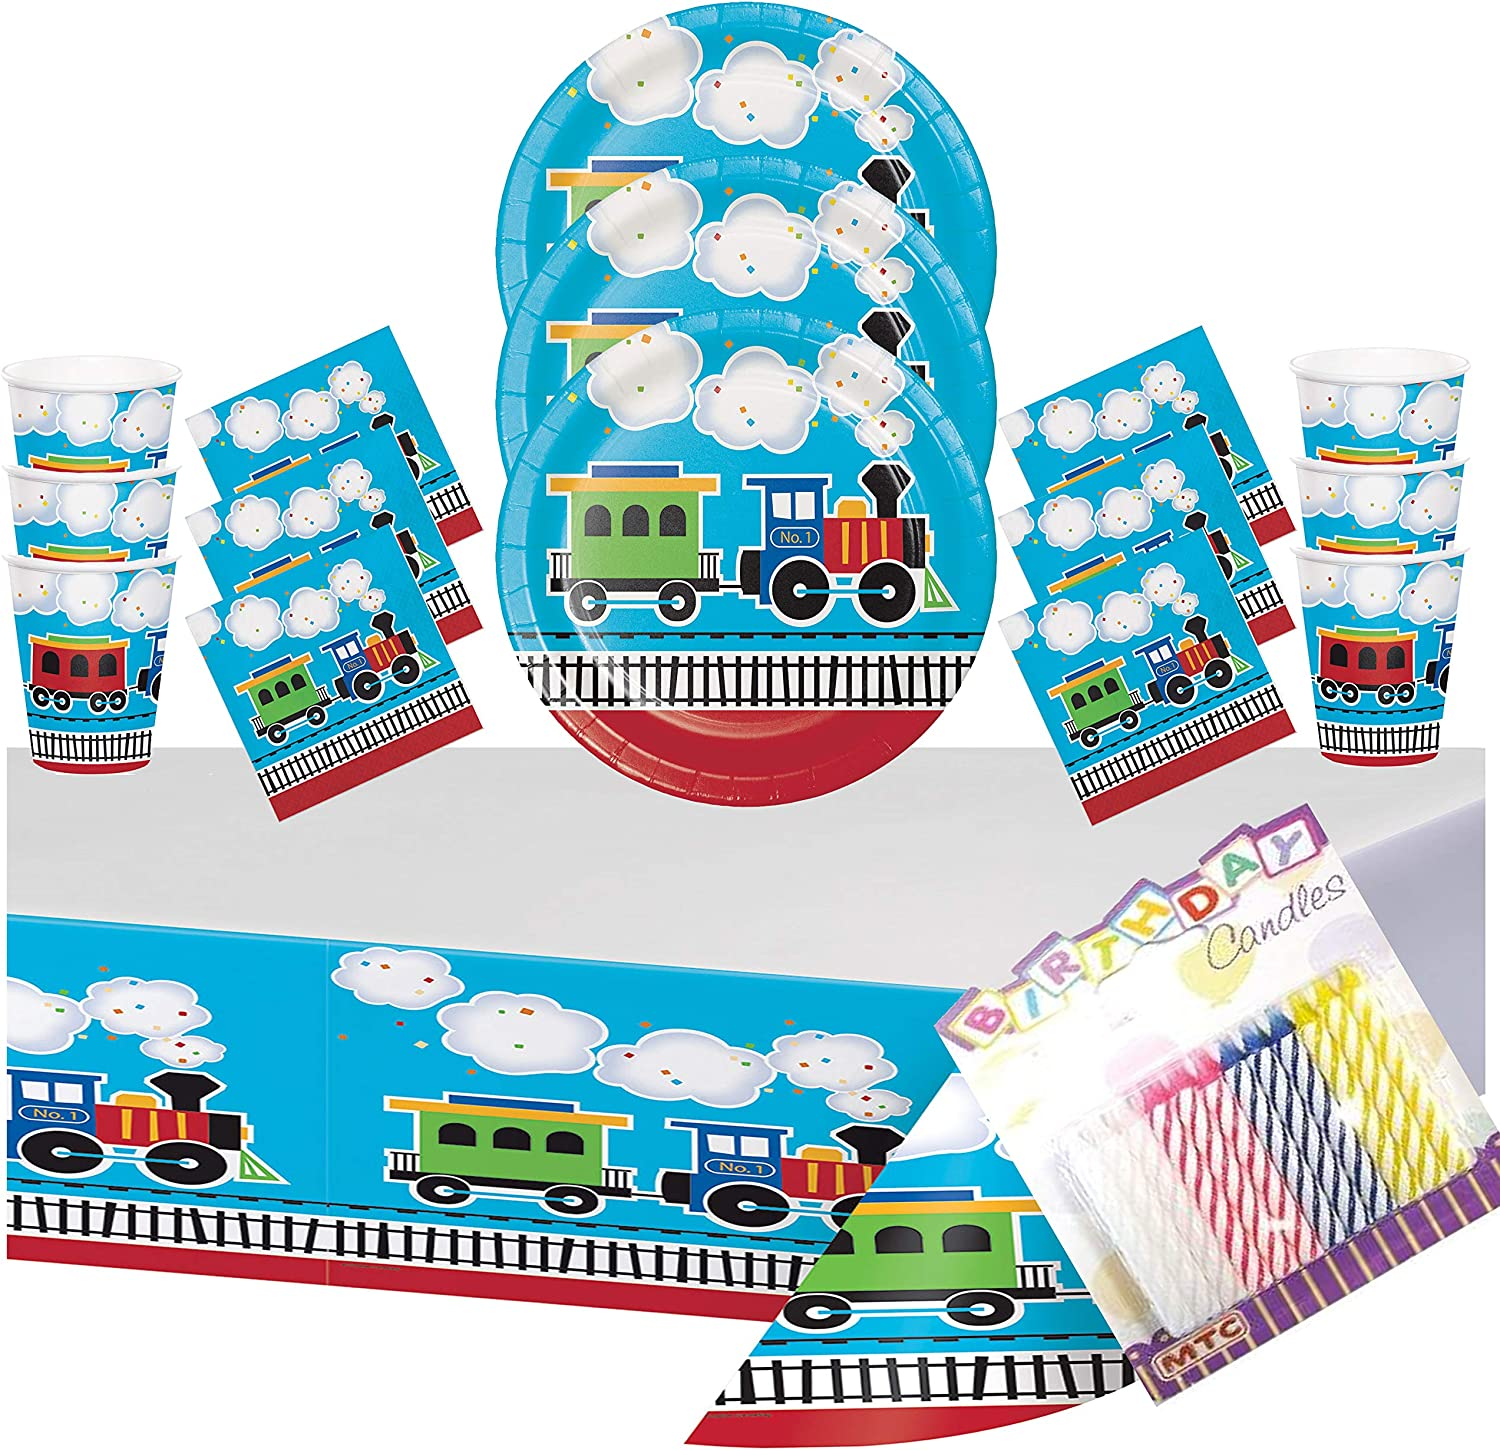 16 Cups 16 Beverage Napkins Thomas All Aboard Train Party Supplies Pack for 16 Guests 16 Stickers and 1 Table Cover Train Decorations For The Perfect Train Birthday Party 16 Dessert Plates